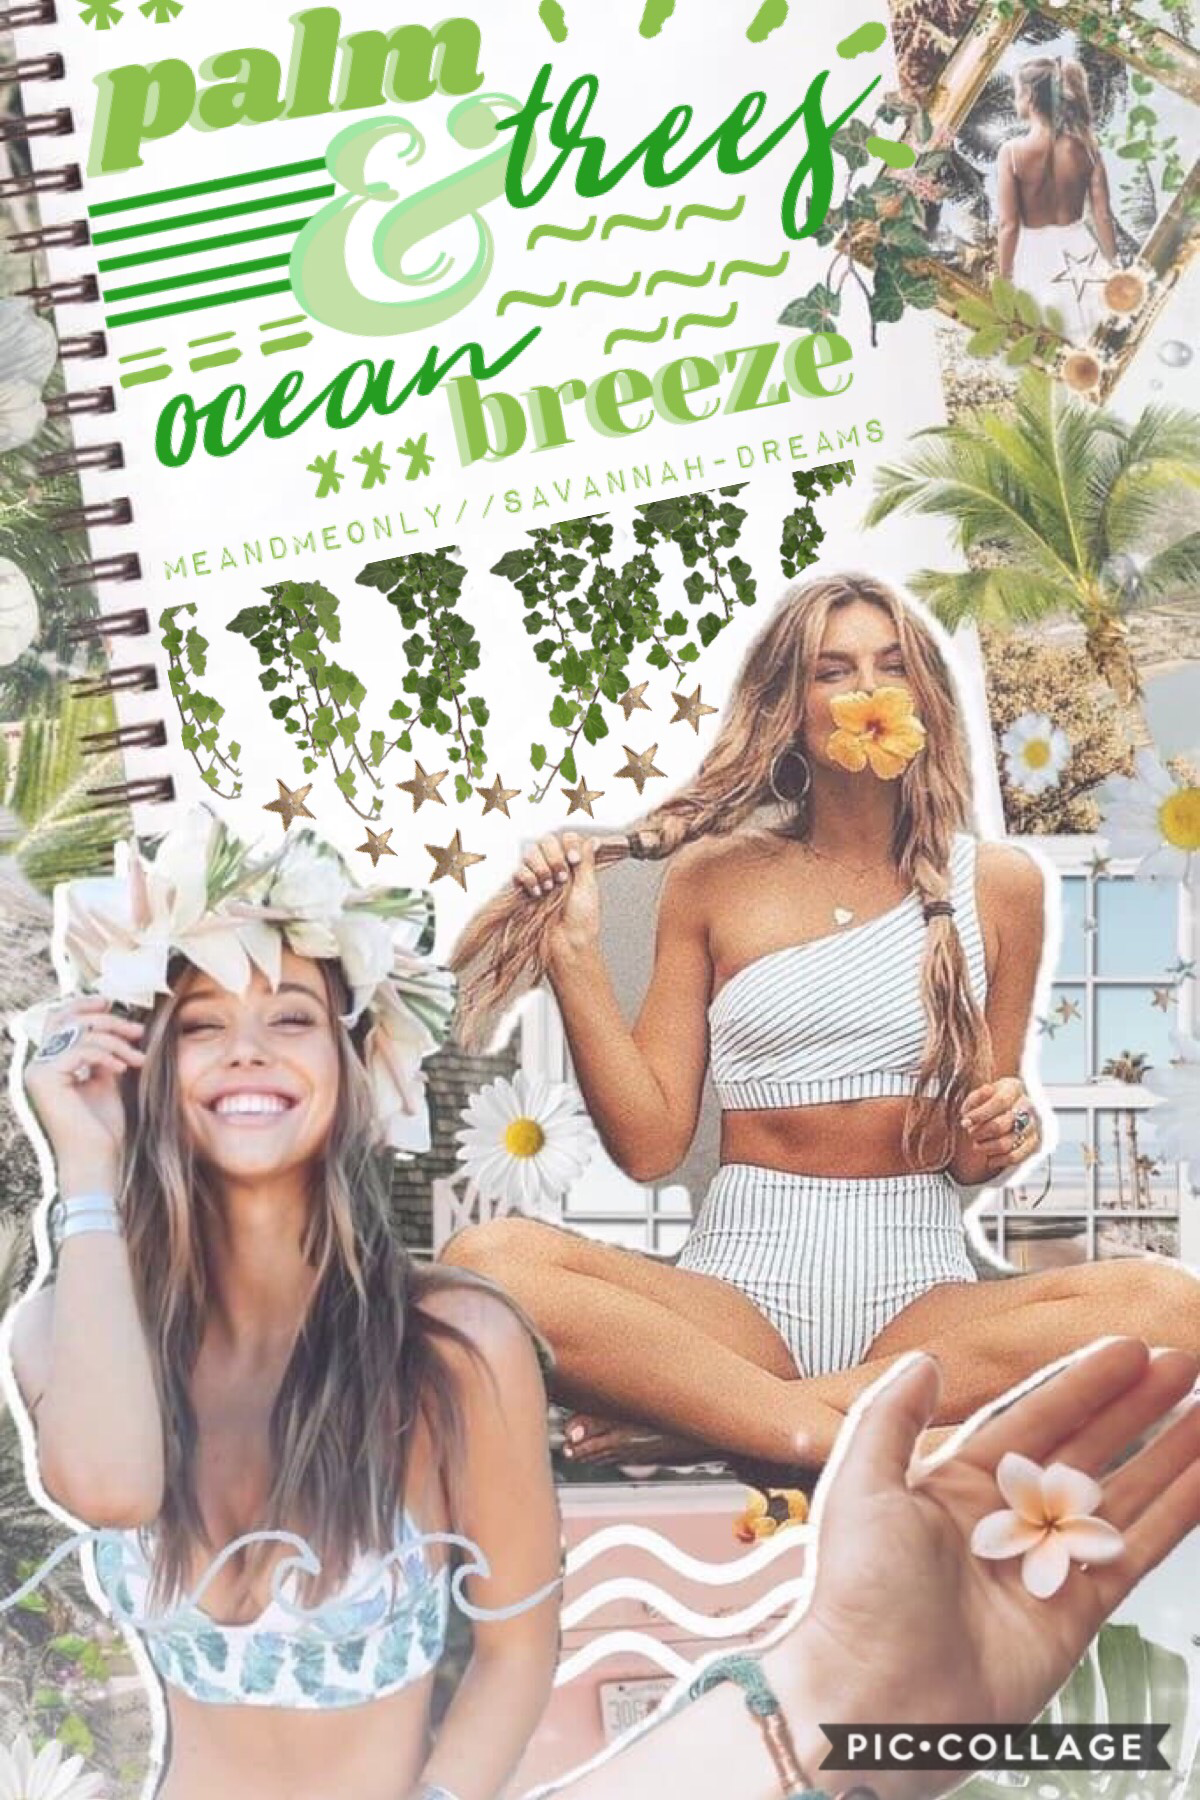 collab with the absolutely amazing... enya! (@meandmeonly) ☁️ do i even need to say how incredible she is?? she's been my idol for my entire time on pc and i'm so glad to be able to be her friend 💗 so go check out her acc!!